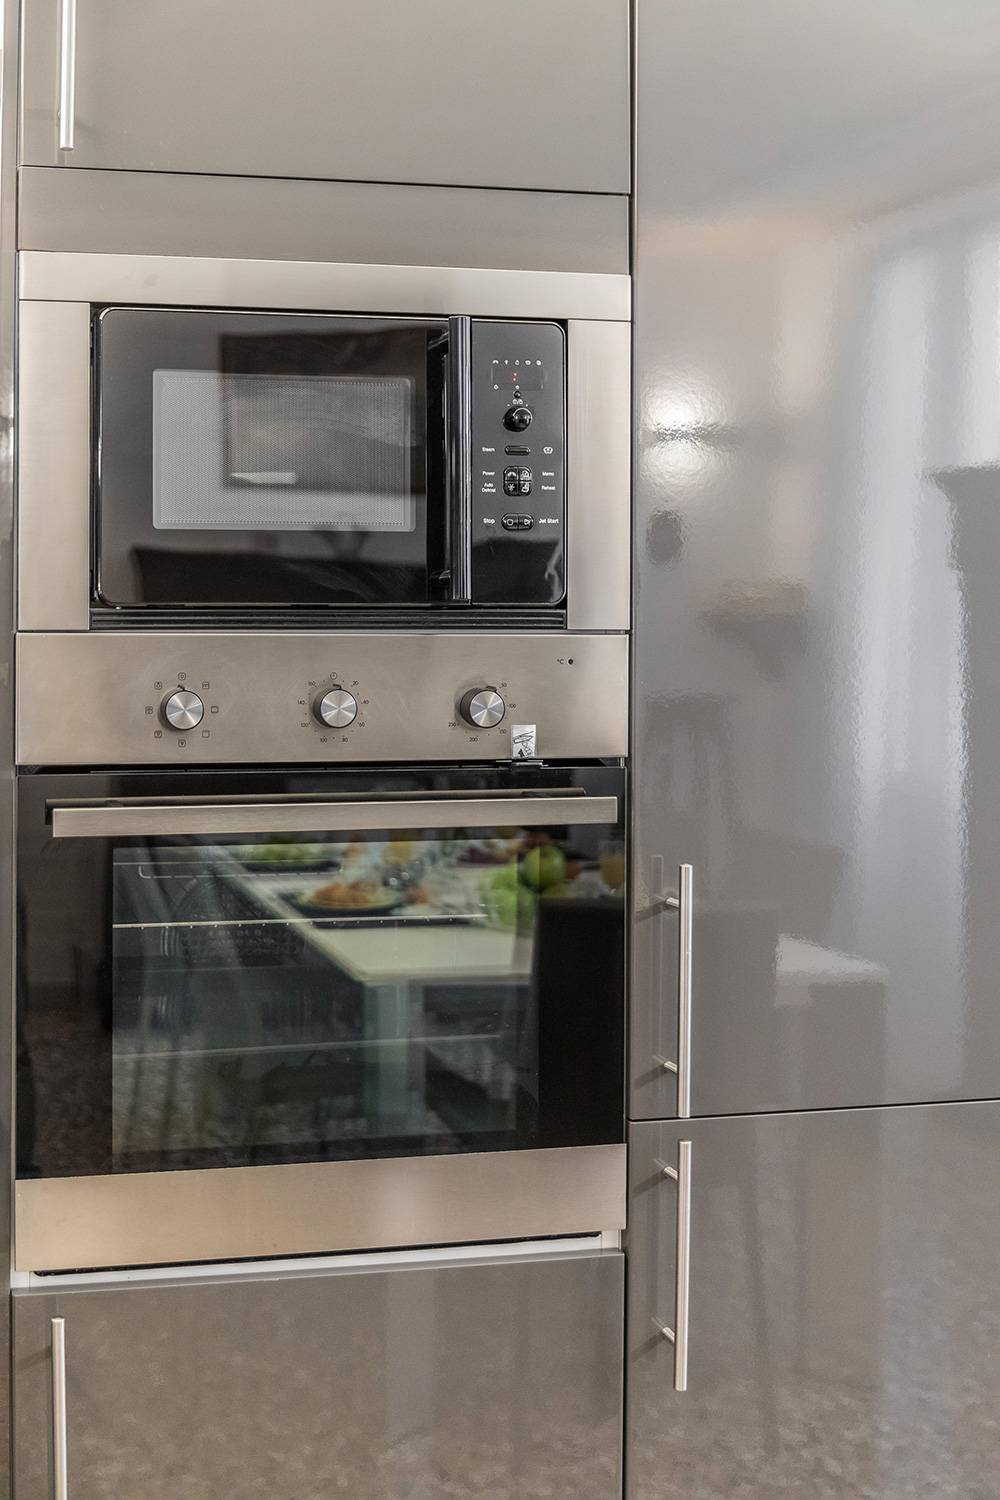 at the Petrarca you have a professional kitchen available